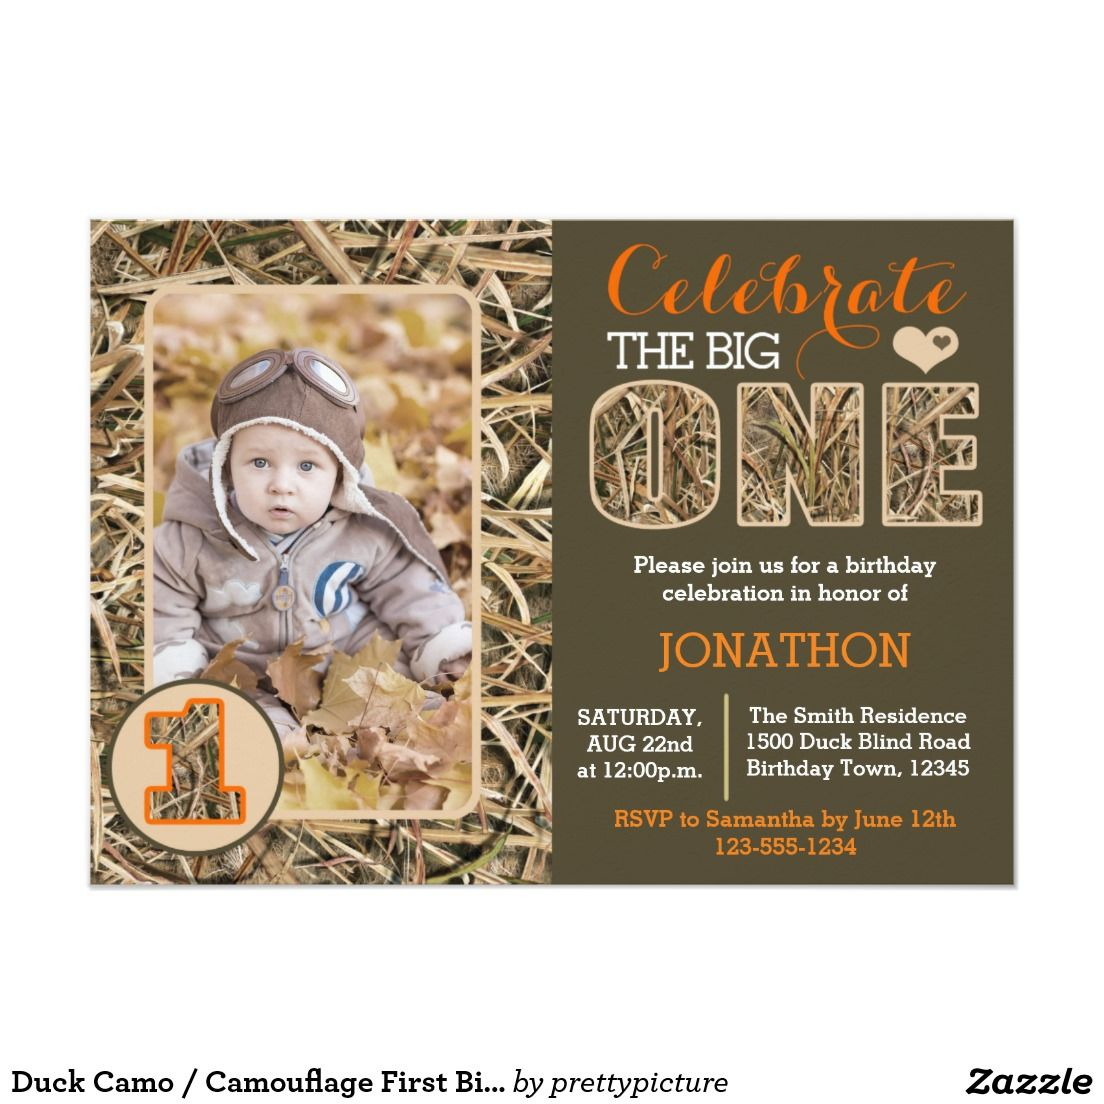 Duck camo camouflage first birthday party card camouflage duck camo camouflage first birthday party card bookmarktalkfo Image collections